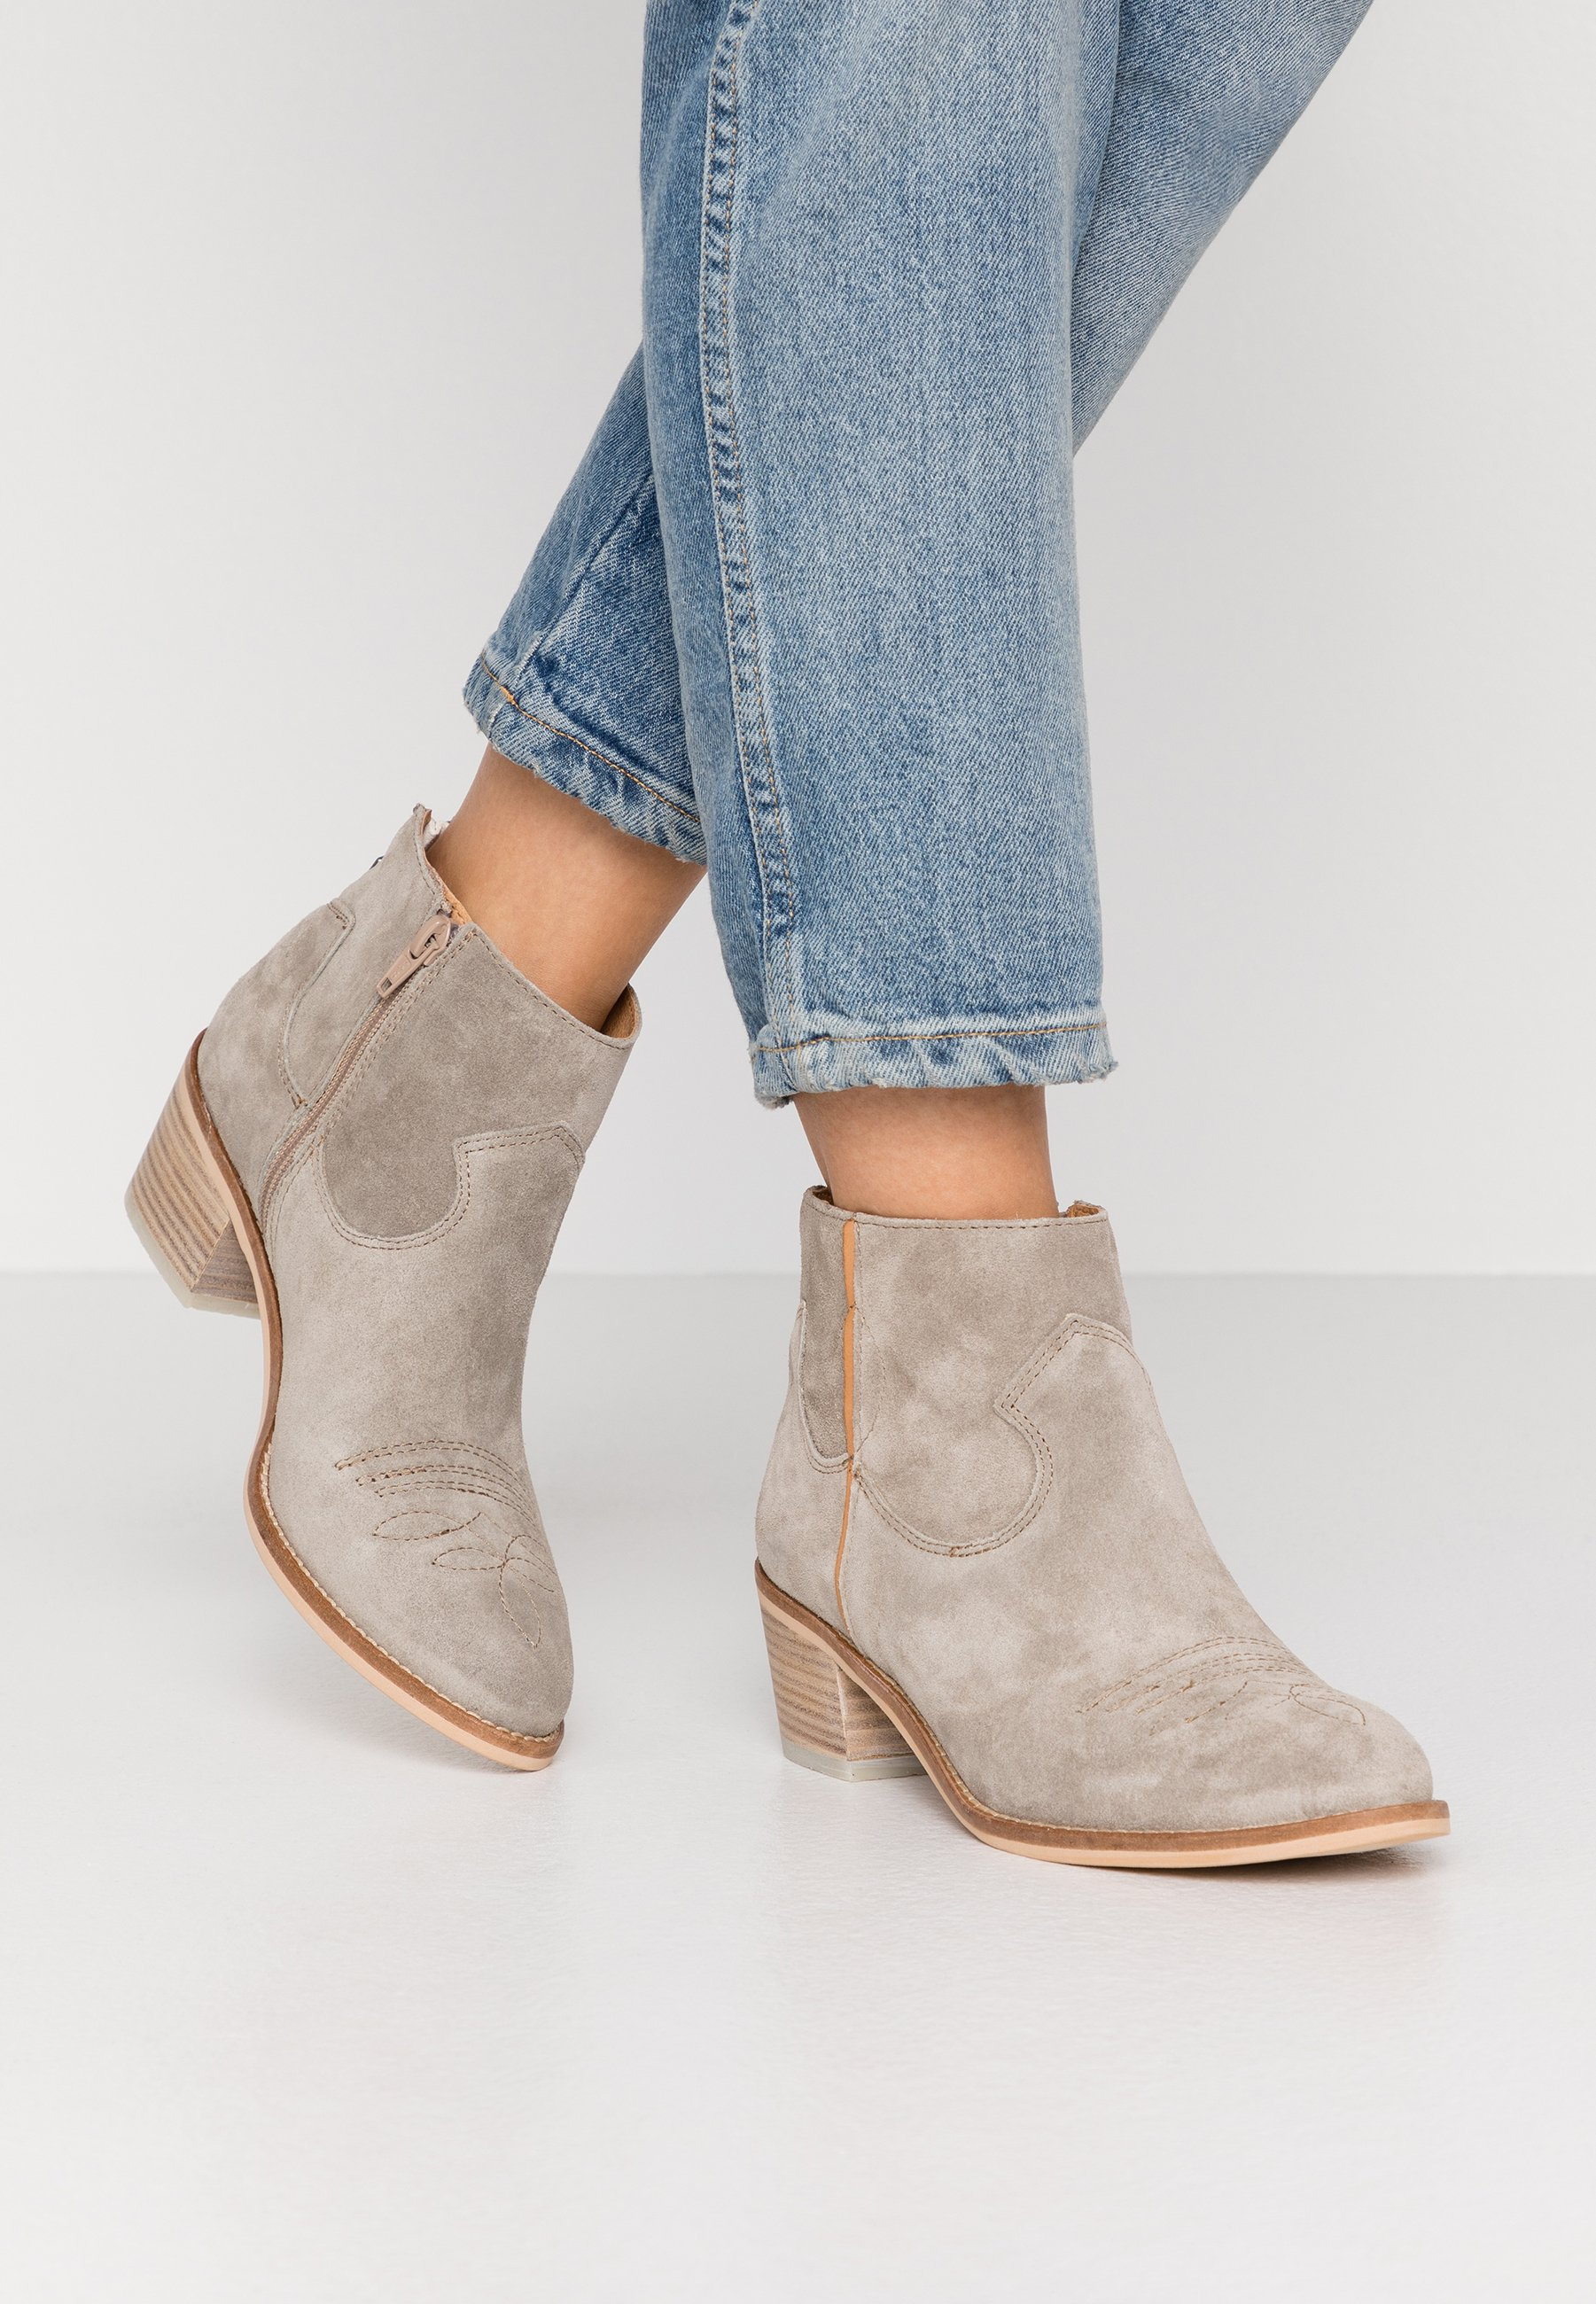 Get New Cheapest Alpe NELLY - Ankle boots - kaky | women's shoes 2020 500cC